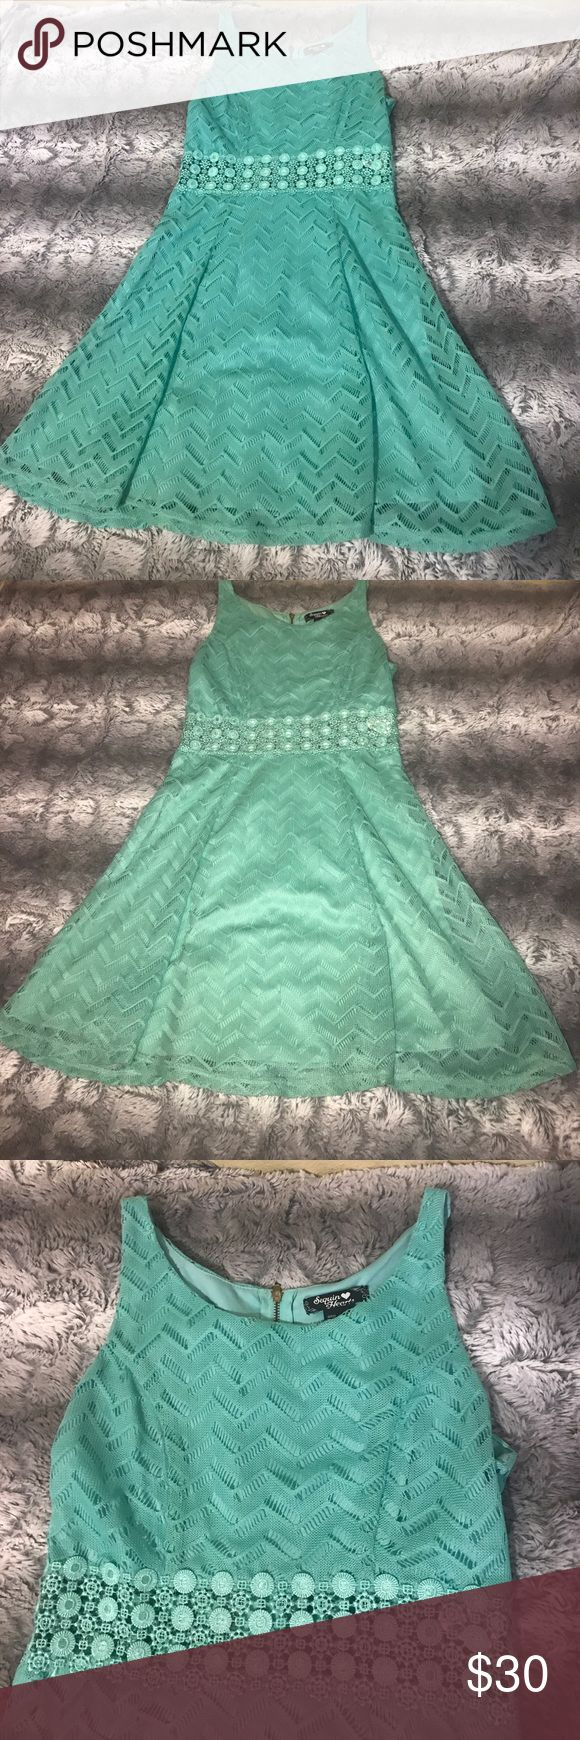 IN GREAT CONDITION! 💖 Mint dress, lace at the stomach and shows a little bit of skin Dresses Mini